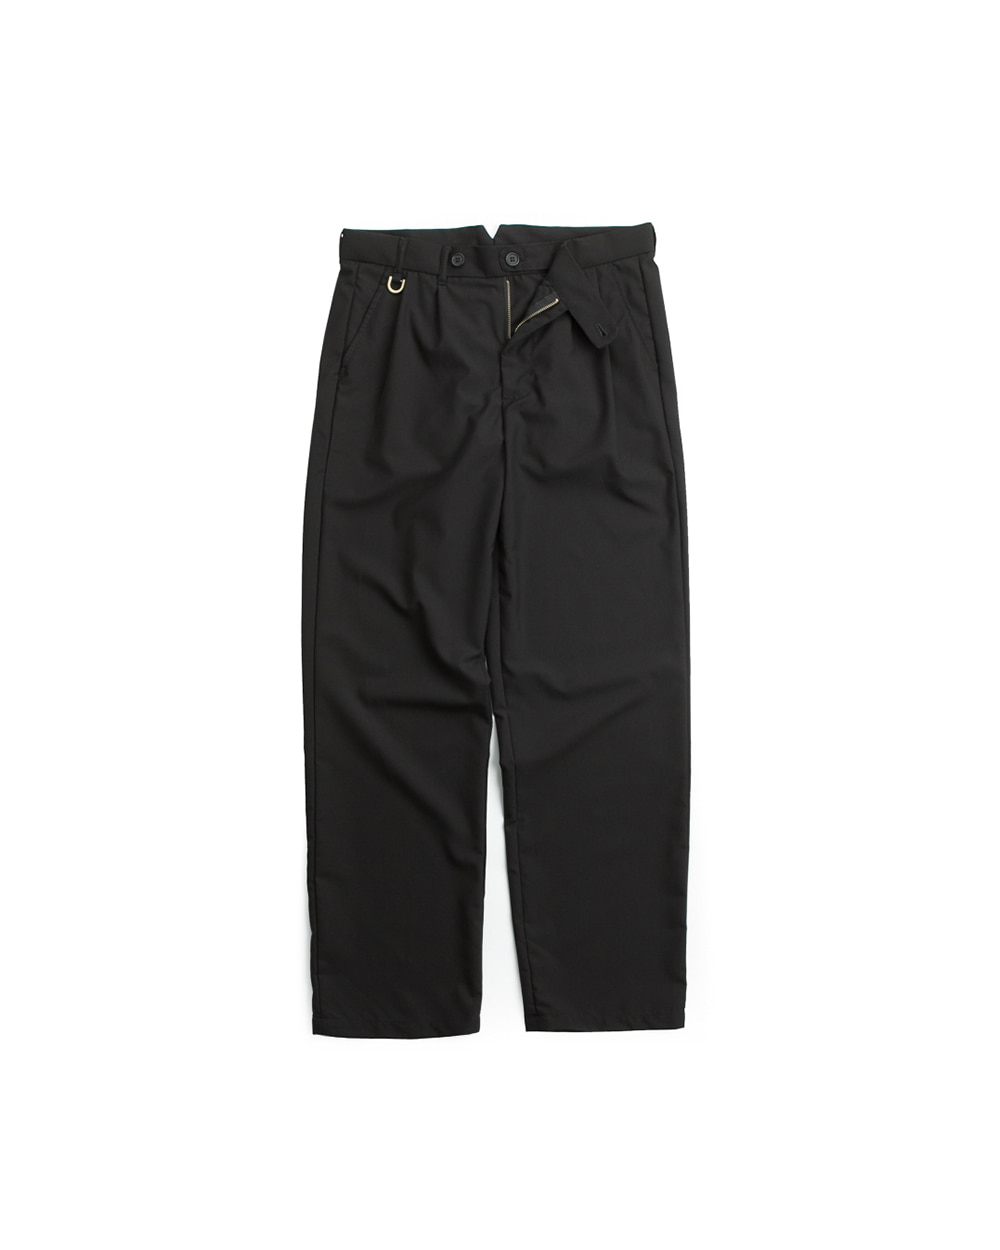 DOUBLE PLEATS TROUSER BLACK